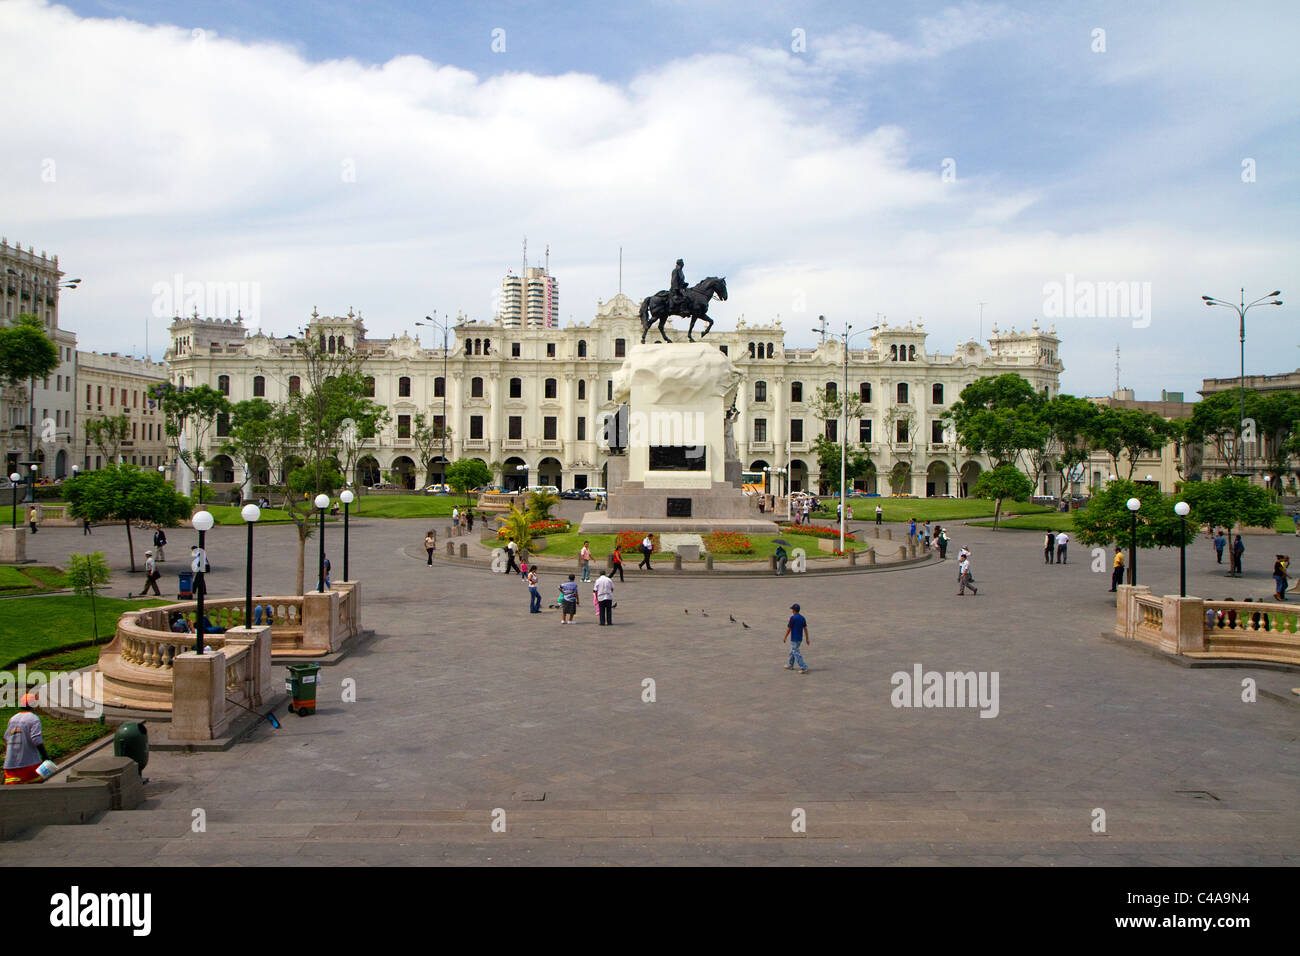 Plaza San Martin located within the Historic Centre of Lima, Peru. Stock Photo